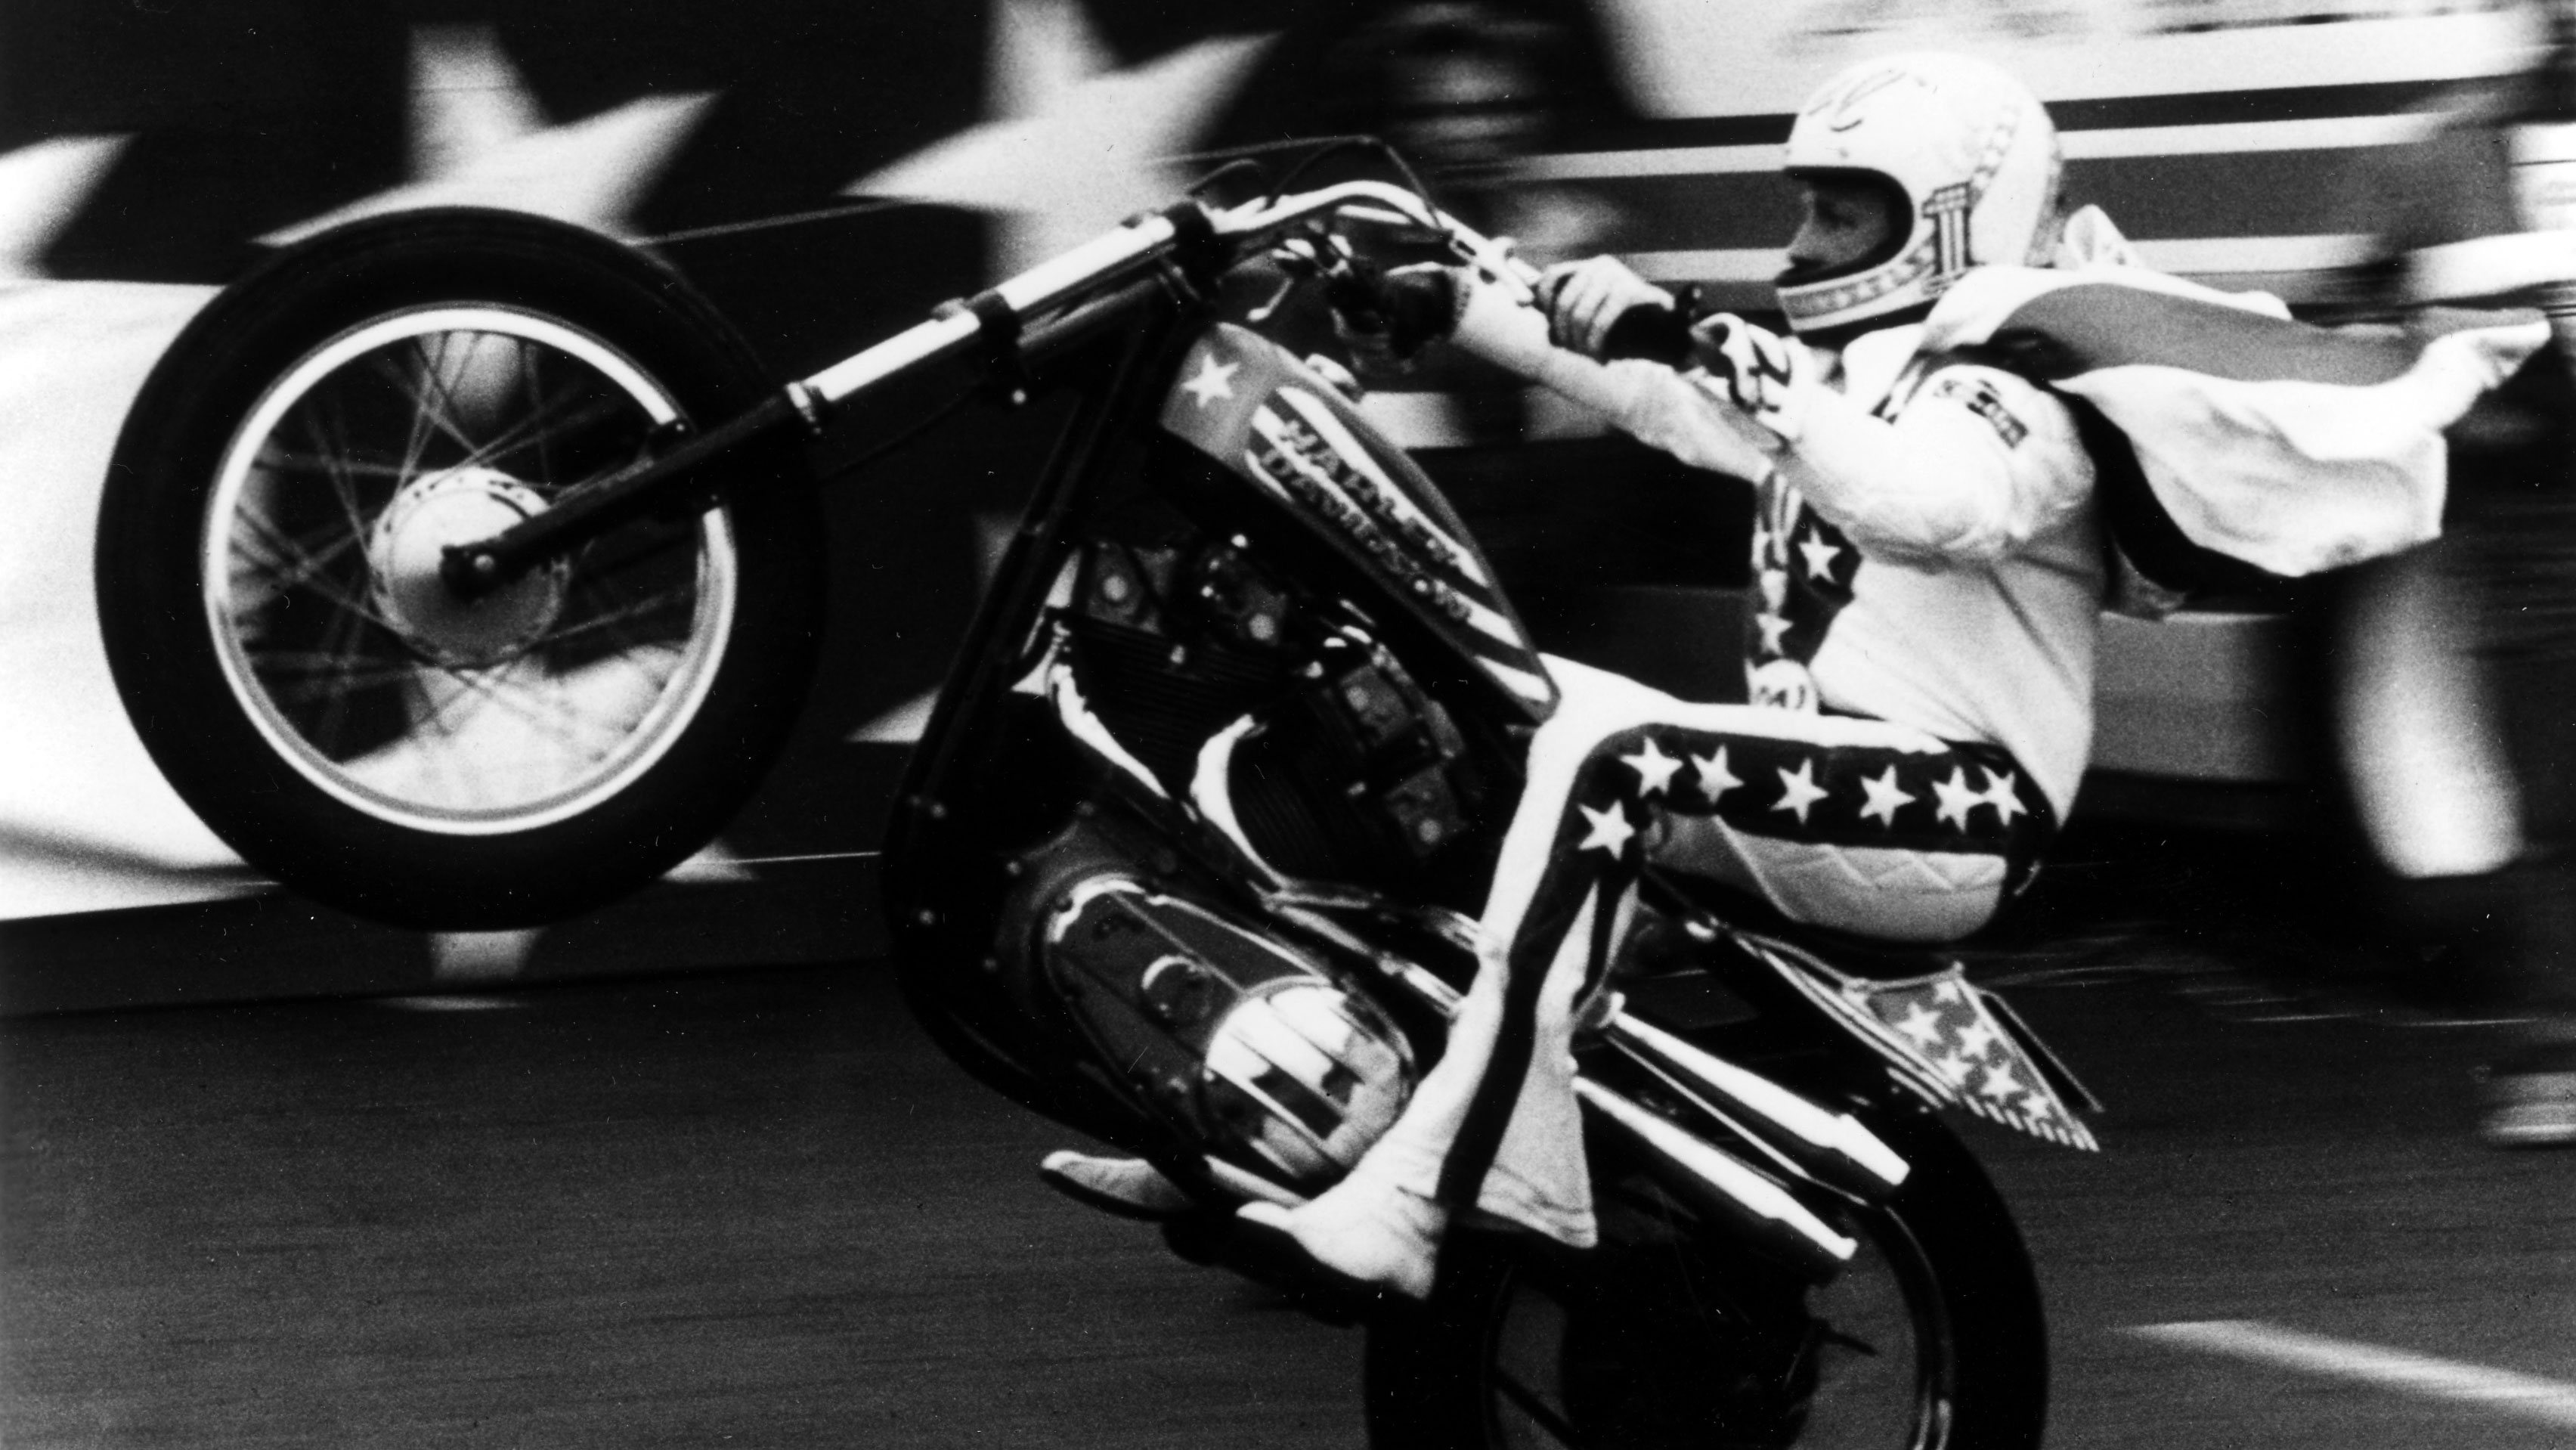 What Drove Evel Knievel to Keep Battering His Body?